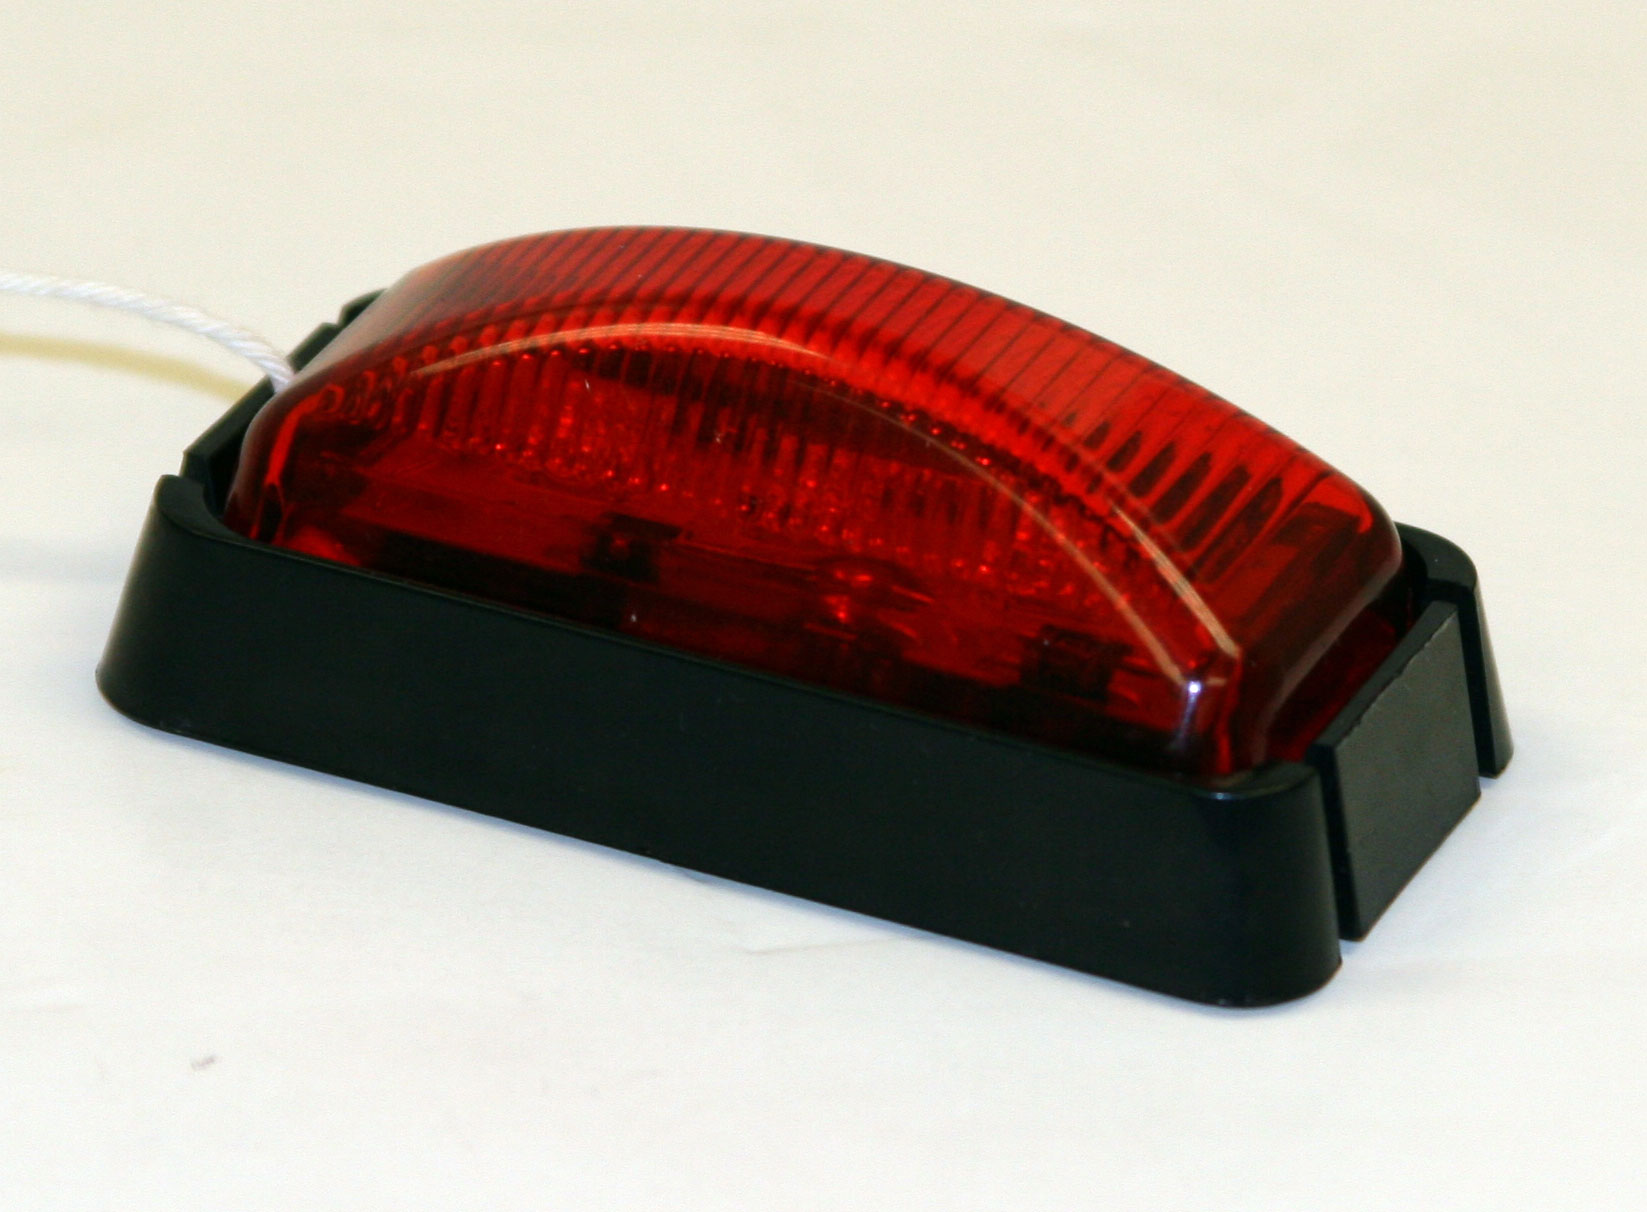 5622103 - Light, Marker, 3 LED Red